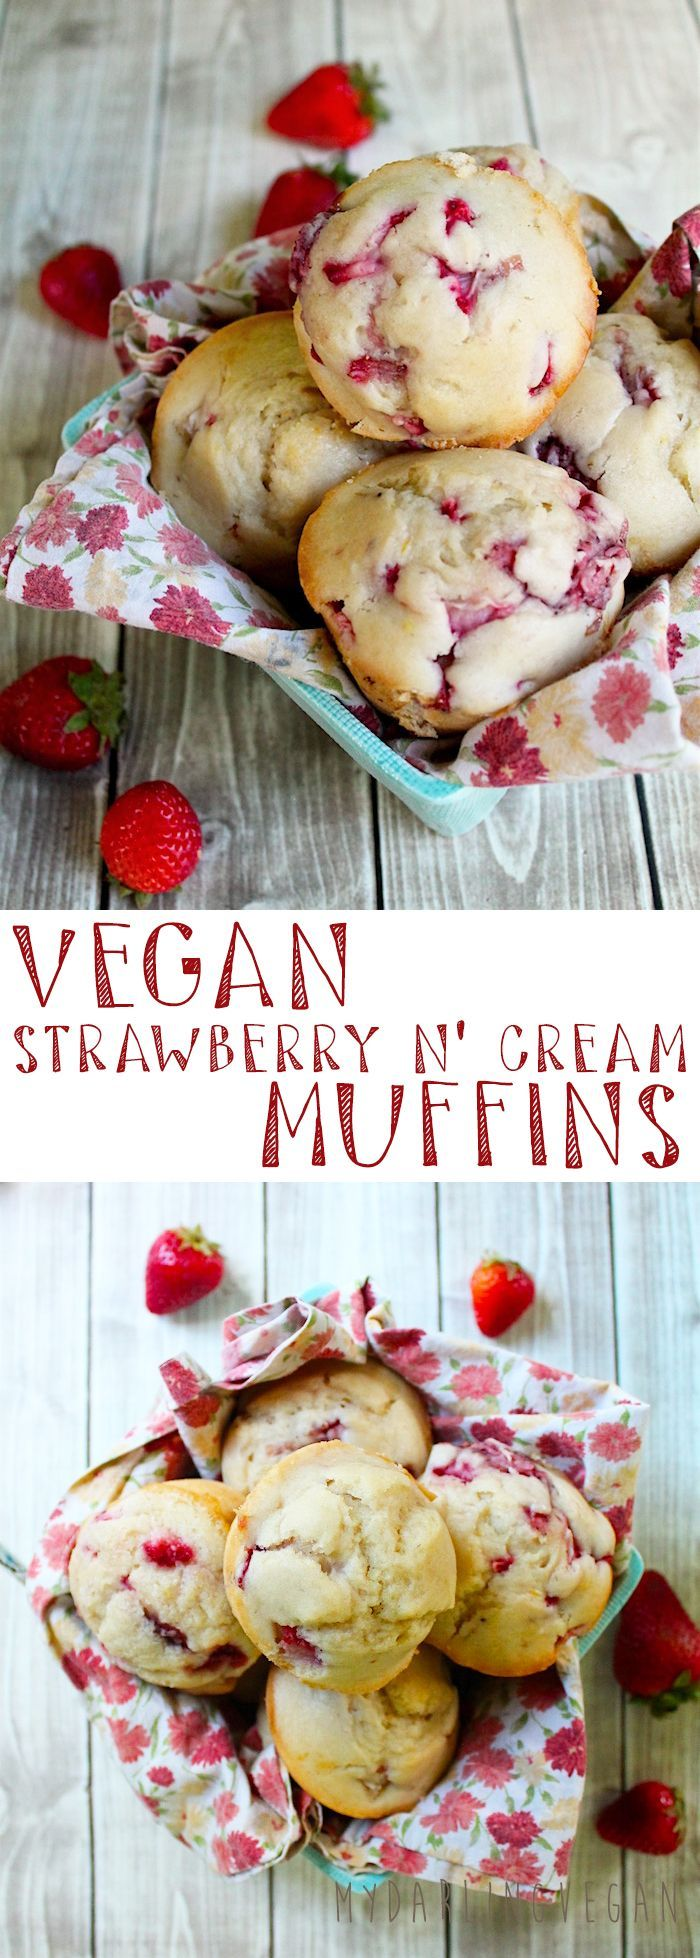 What better way to start your day than with these vegan